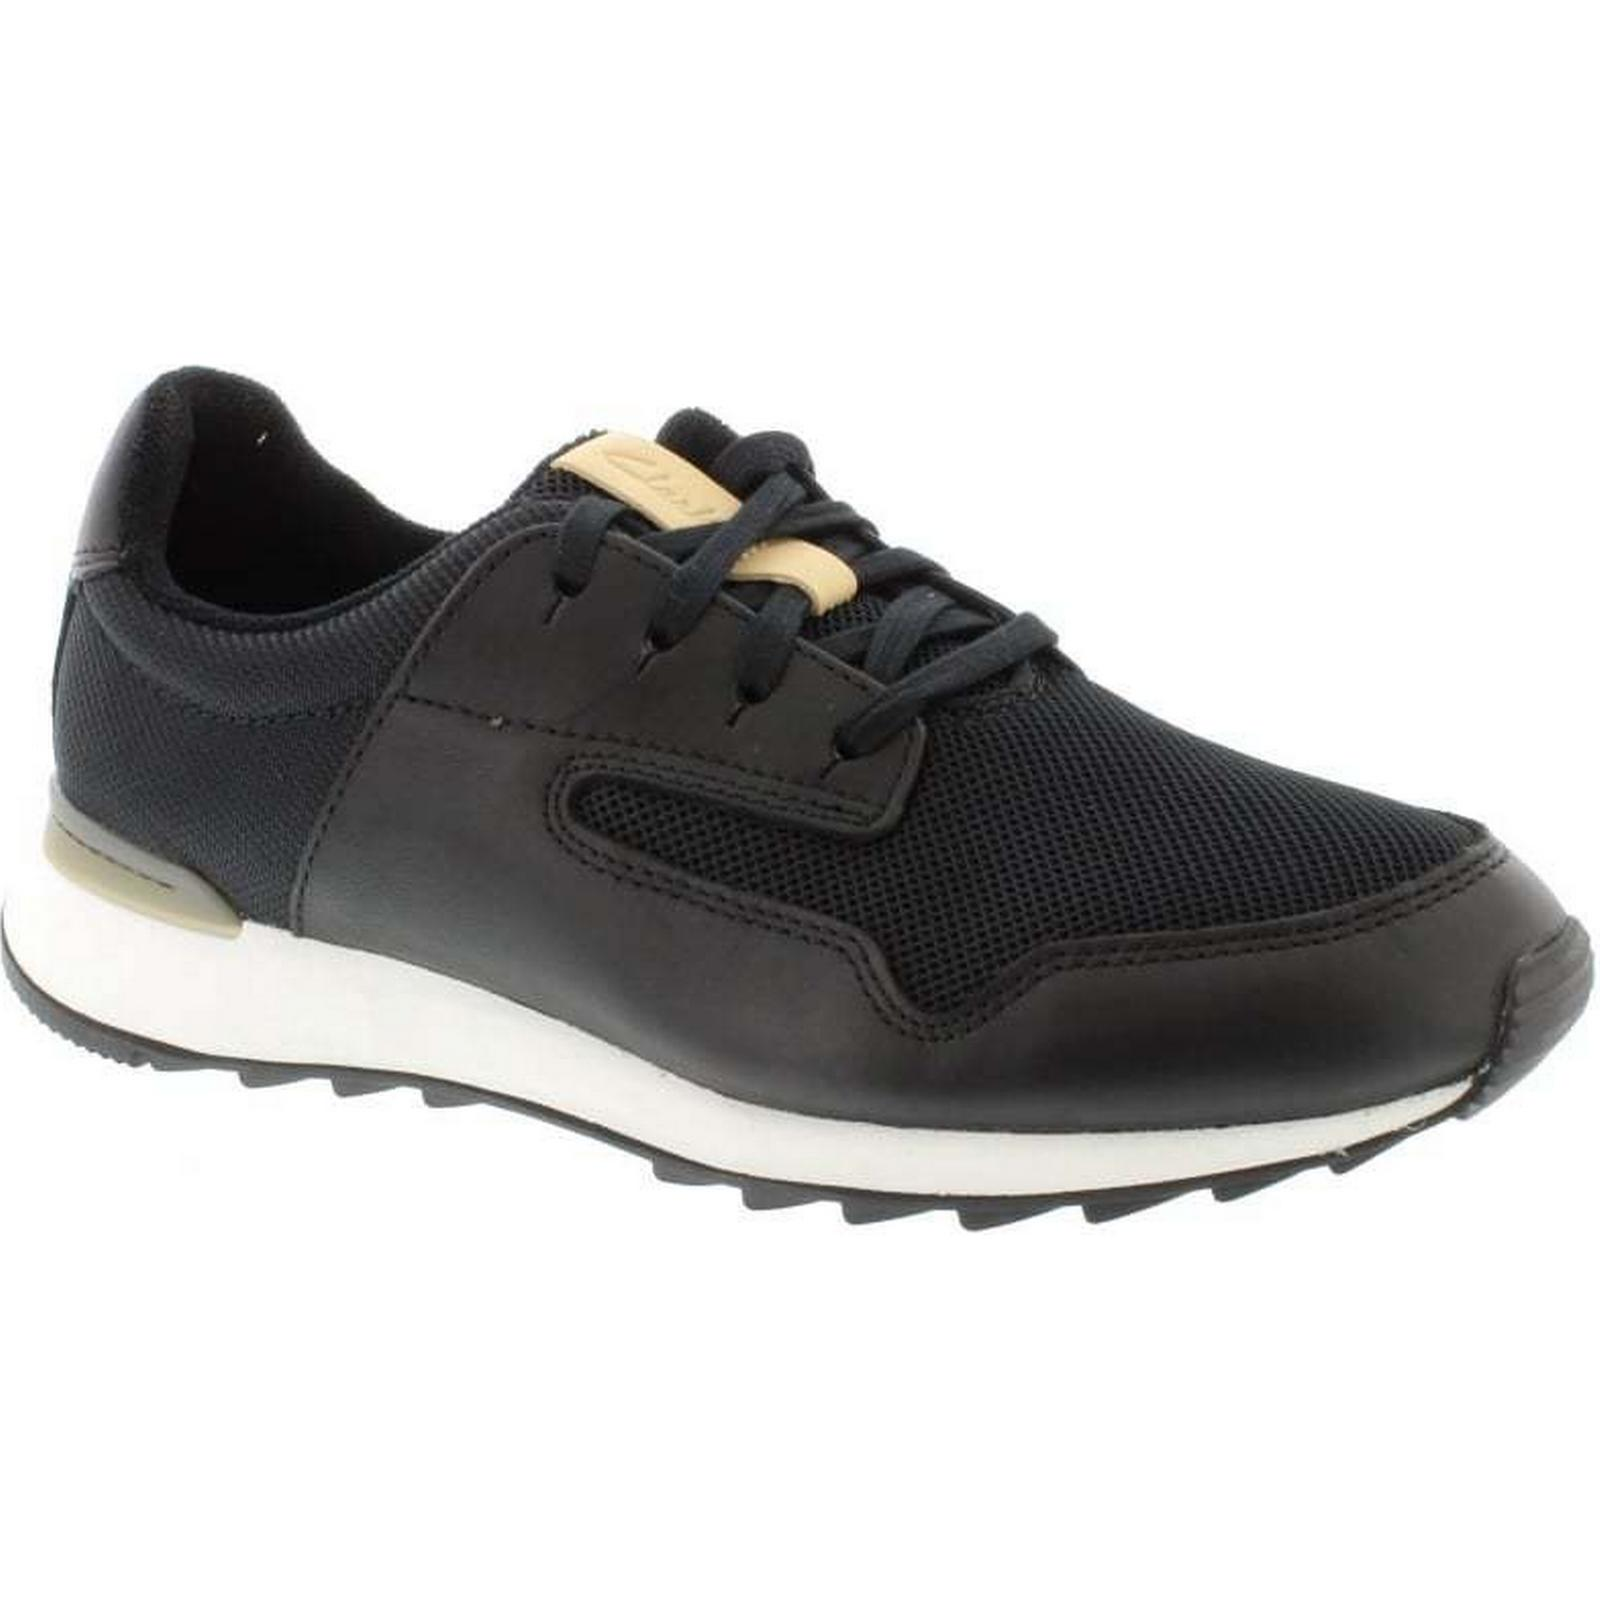 Clarks Black Floura Mix - Black Clarks Leather Size: 8 UK dbb516